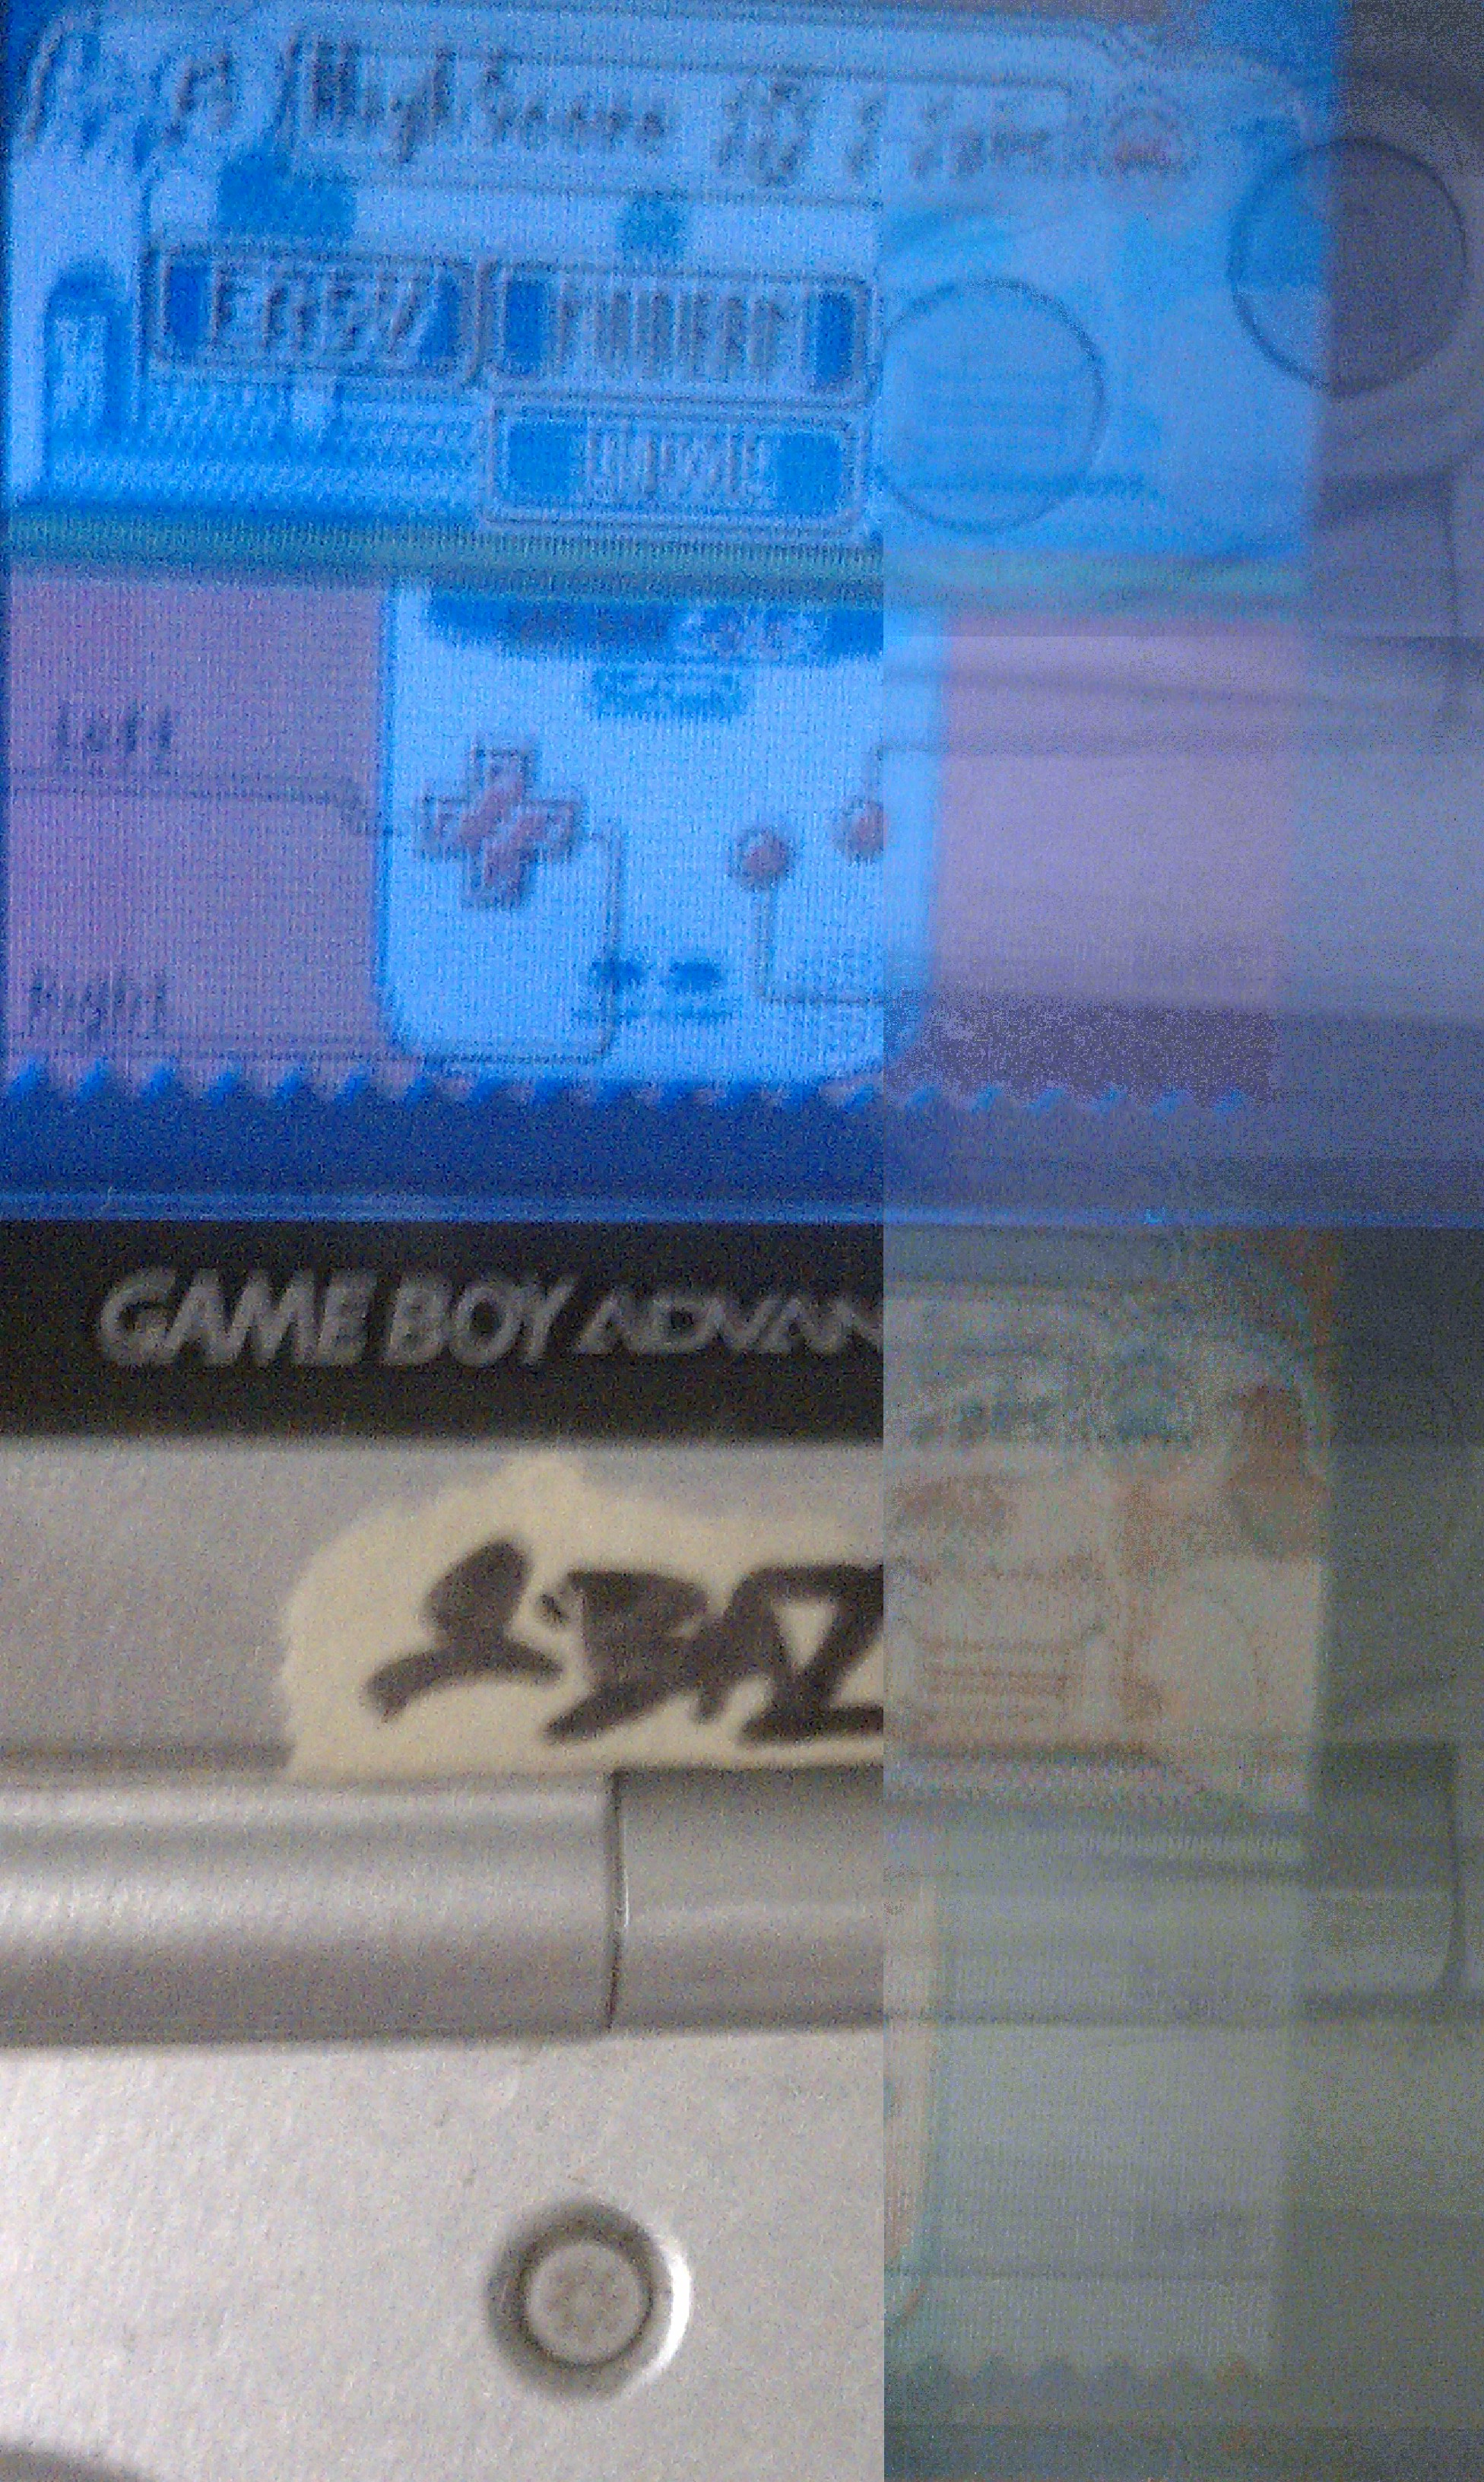 S.BAZ: Game & Watch Gallery 2: Helmet: Modern: Easy (Game Boy Color) 1,011 points on 2016-06-25 16:35:17